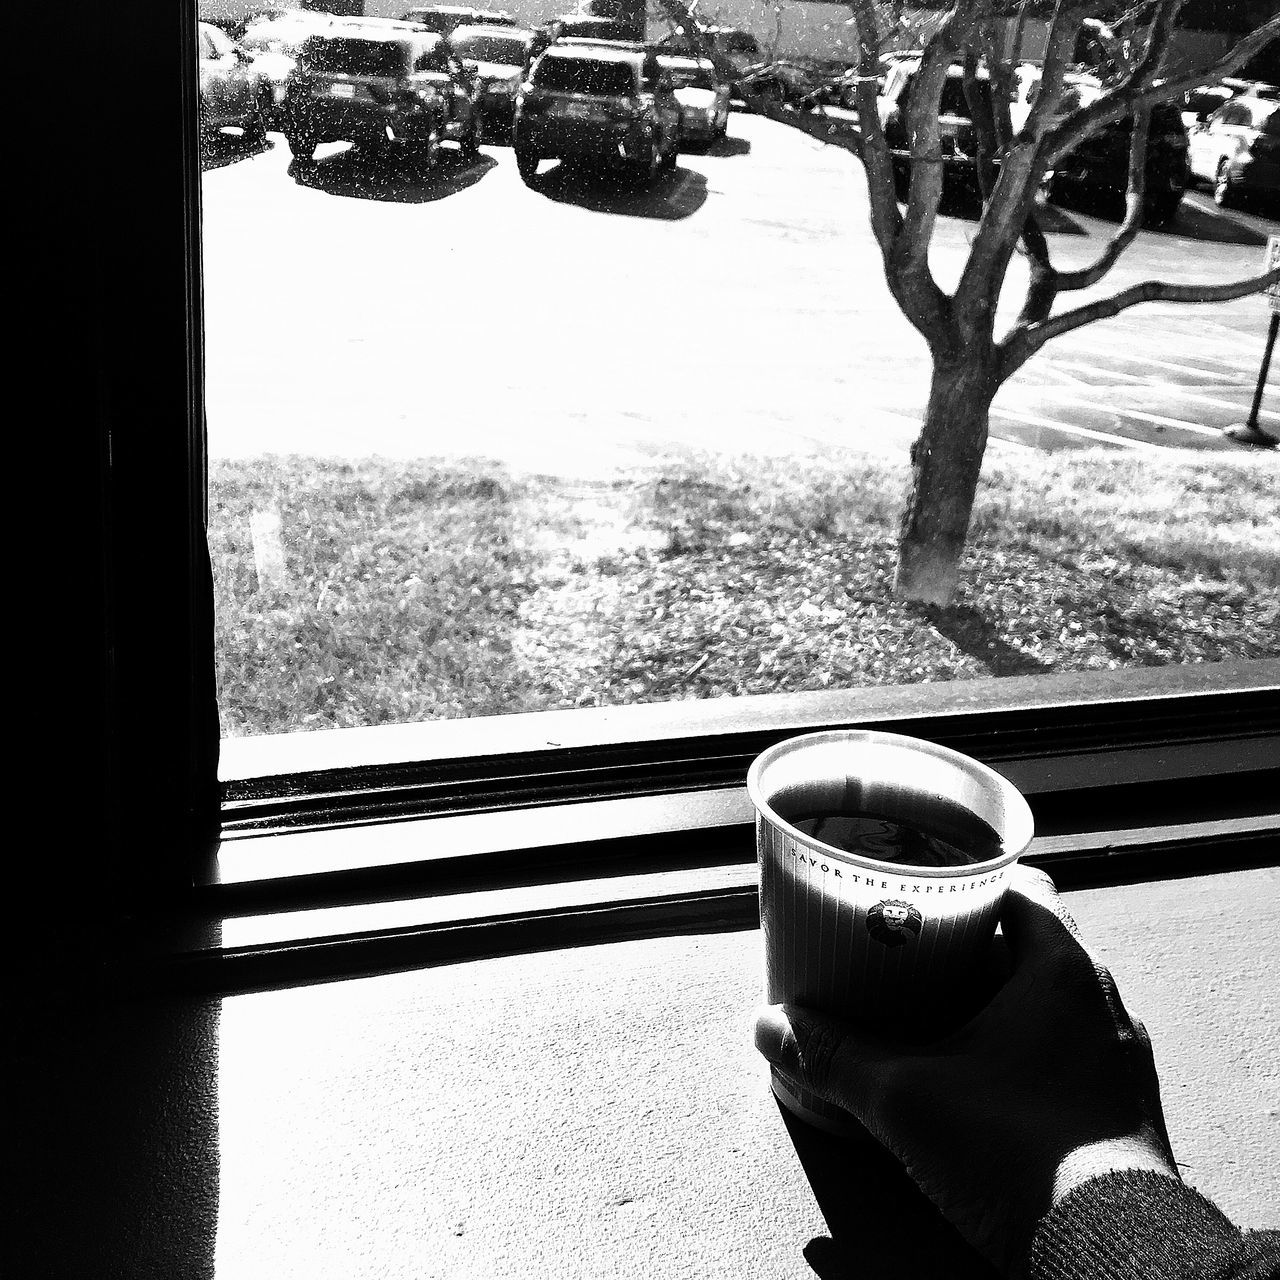 window, vehicle interior, day, coffee cup, transportation, drink, coffee - drink, real people, food and drink, refreshment, one person, tree, mode of transport, sunlight, human hand, human body part, indoors, close-up, nature, freshness, people